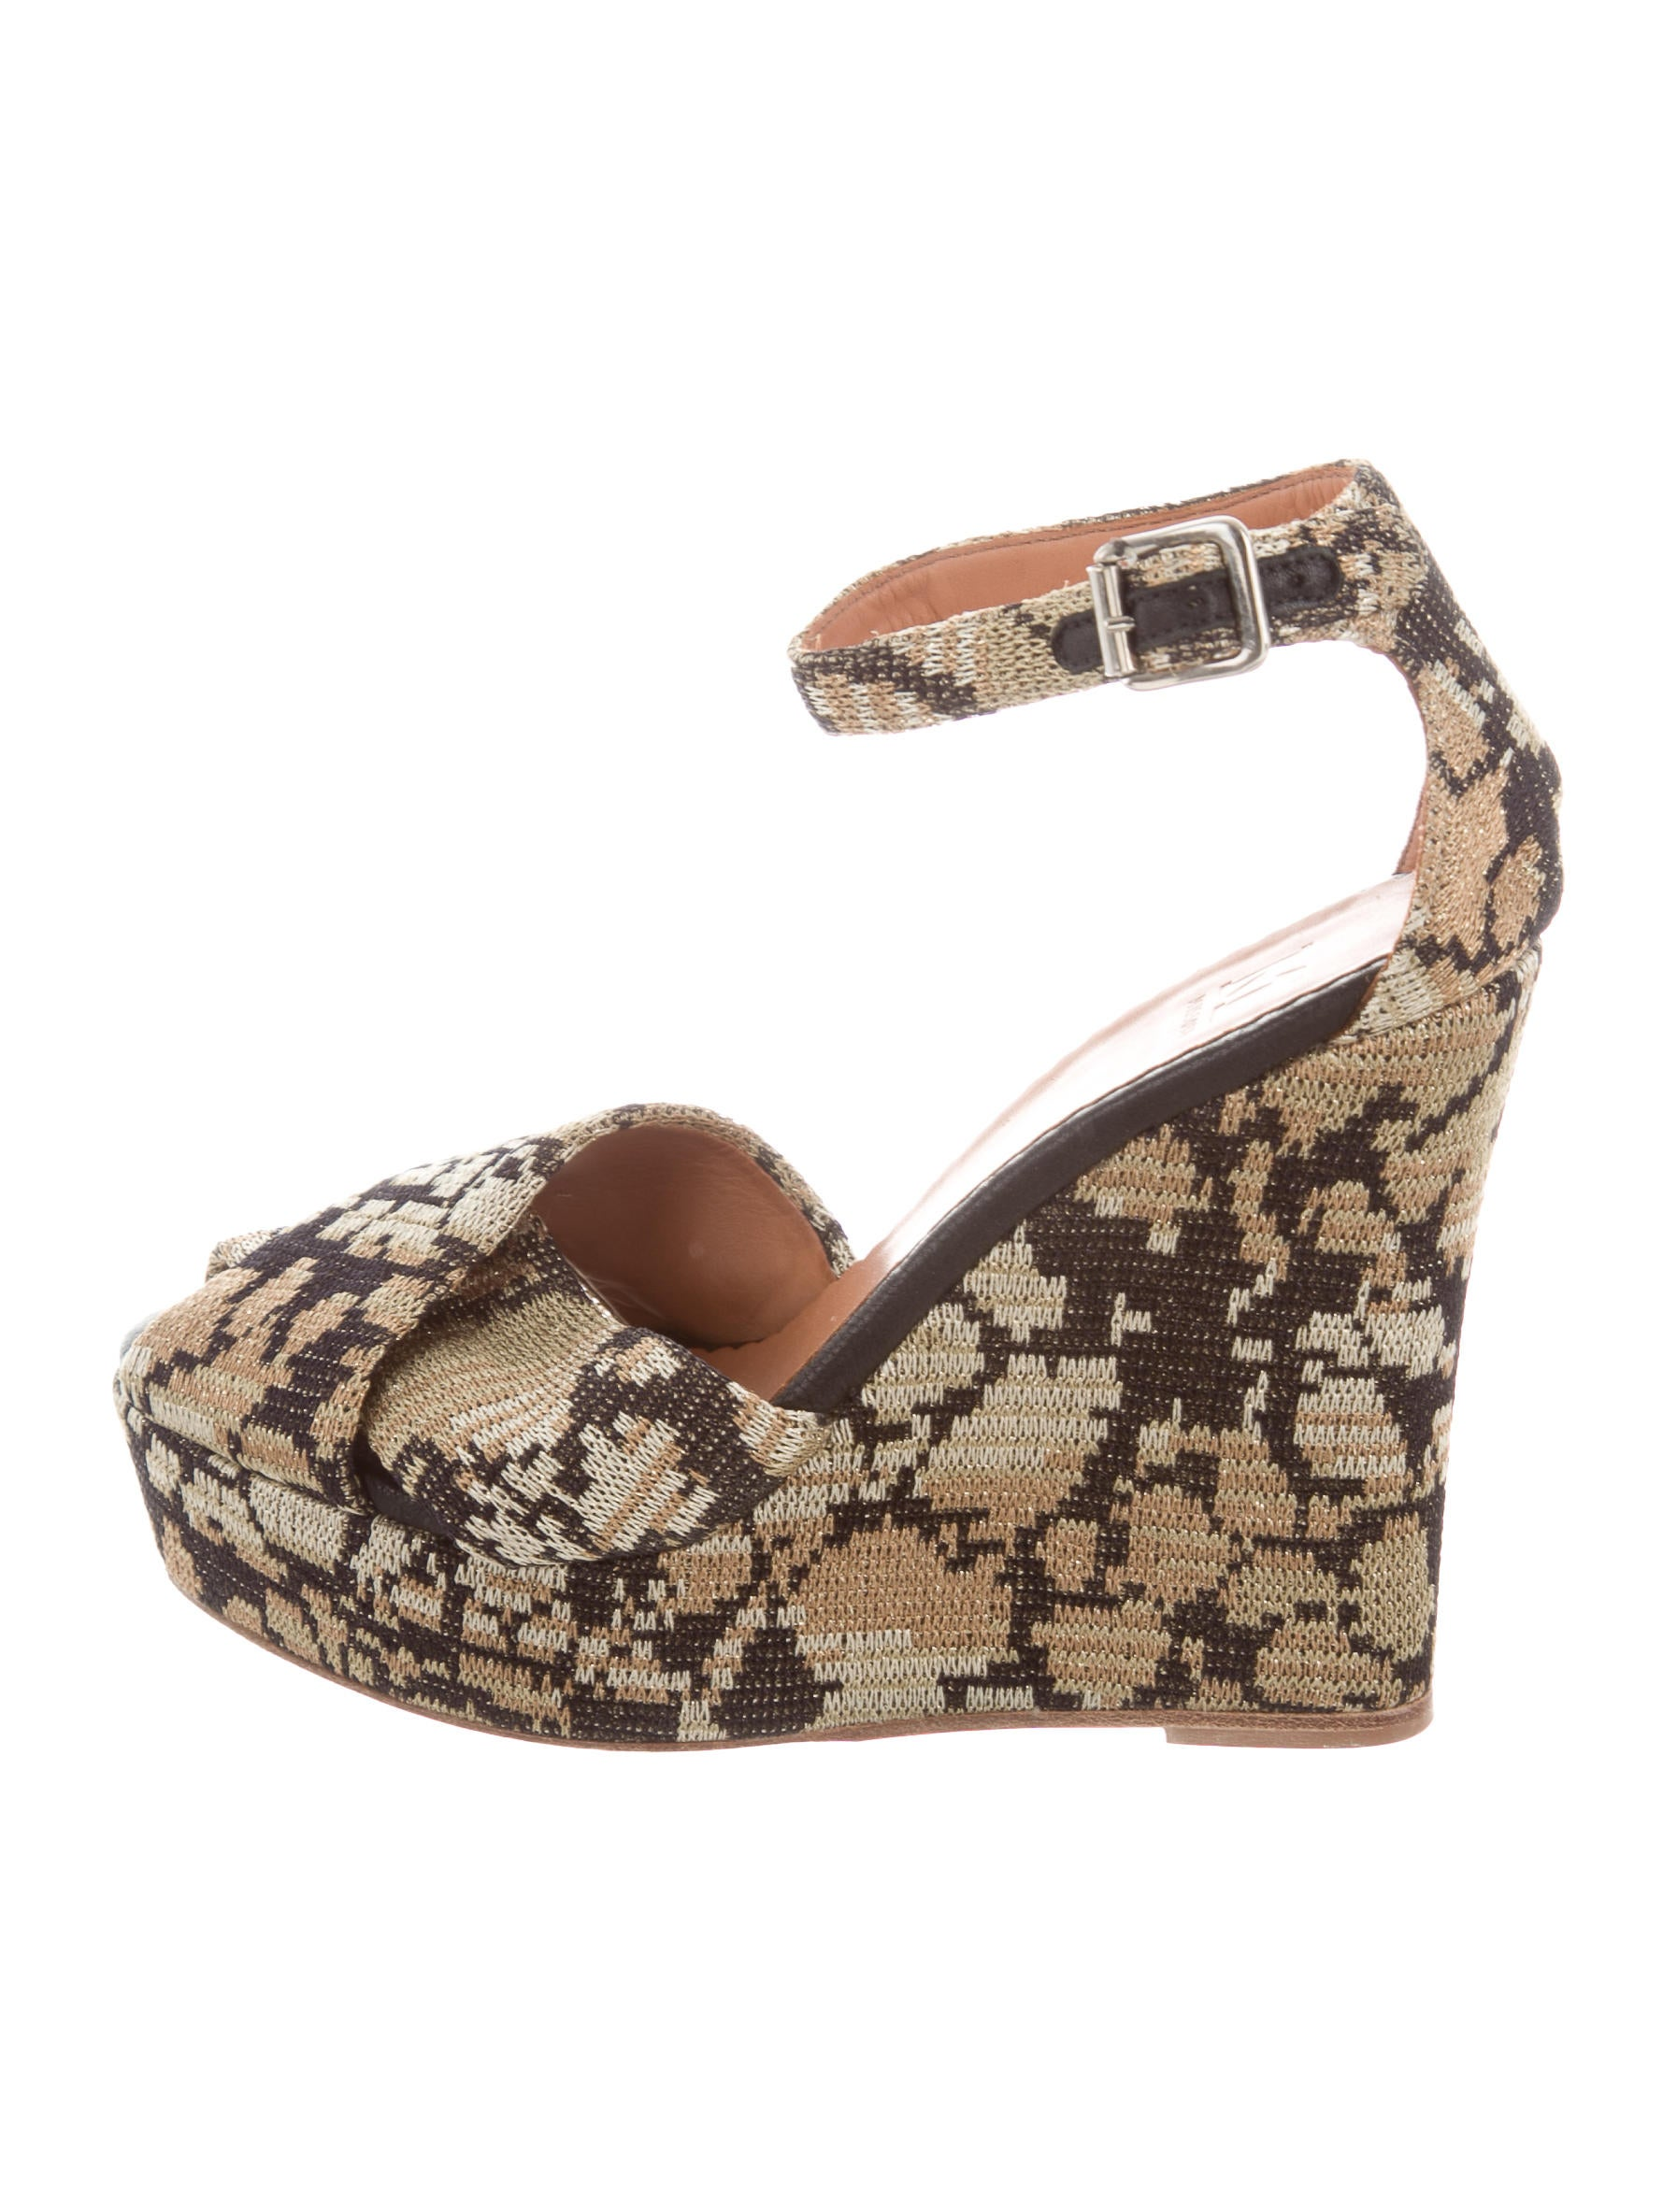 Missoni M Patterned Platform Wedges outlet from china pay with paypal clearance low cost outlet shopping online under 50 dollars YOc7Qt